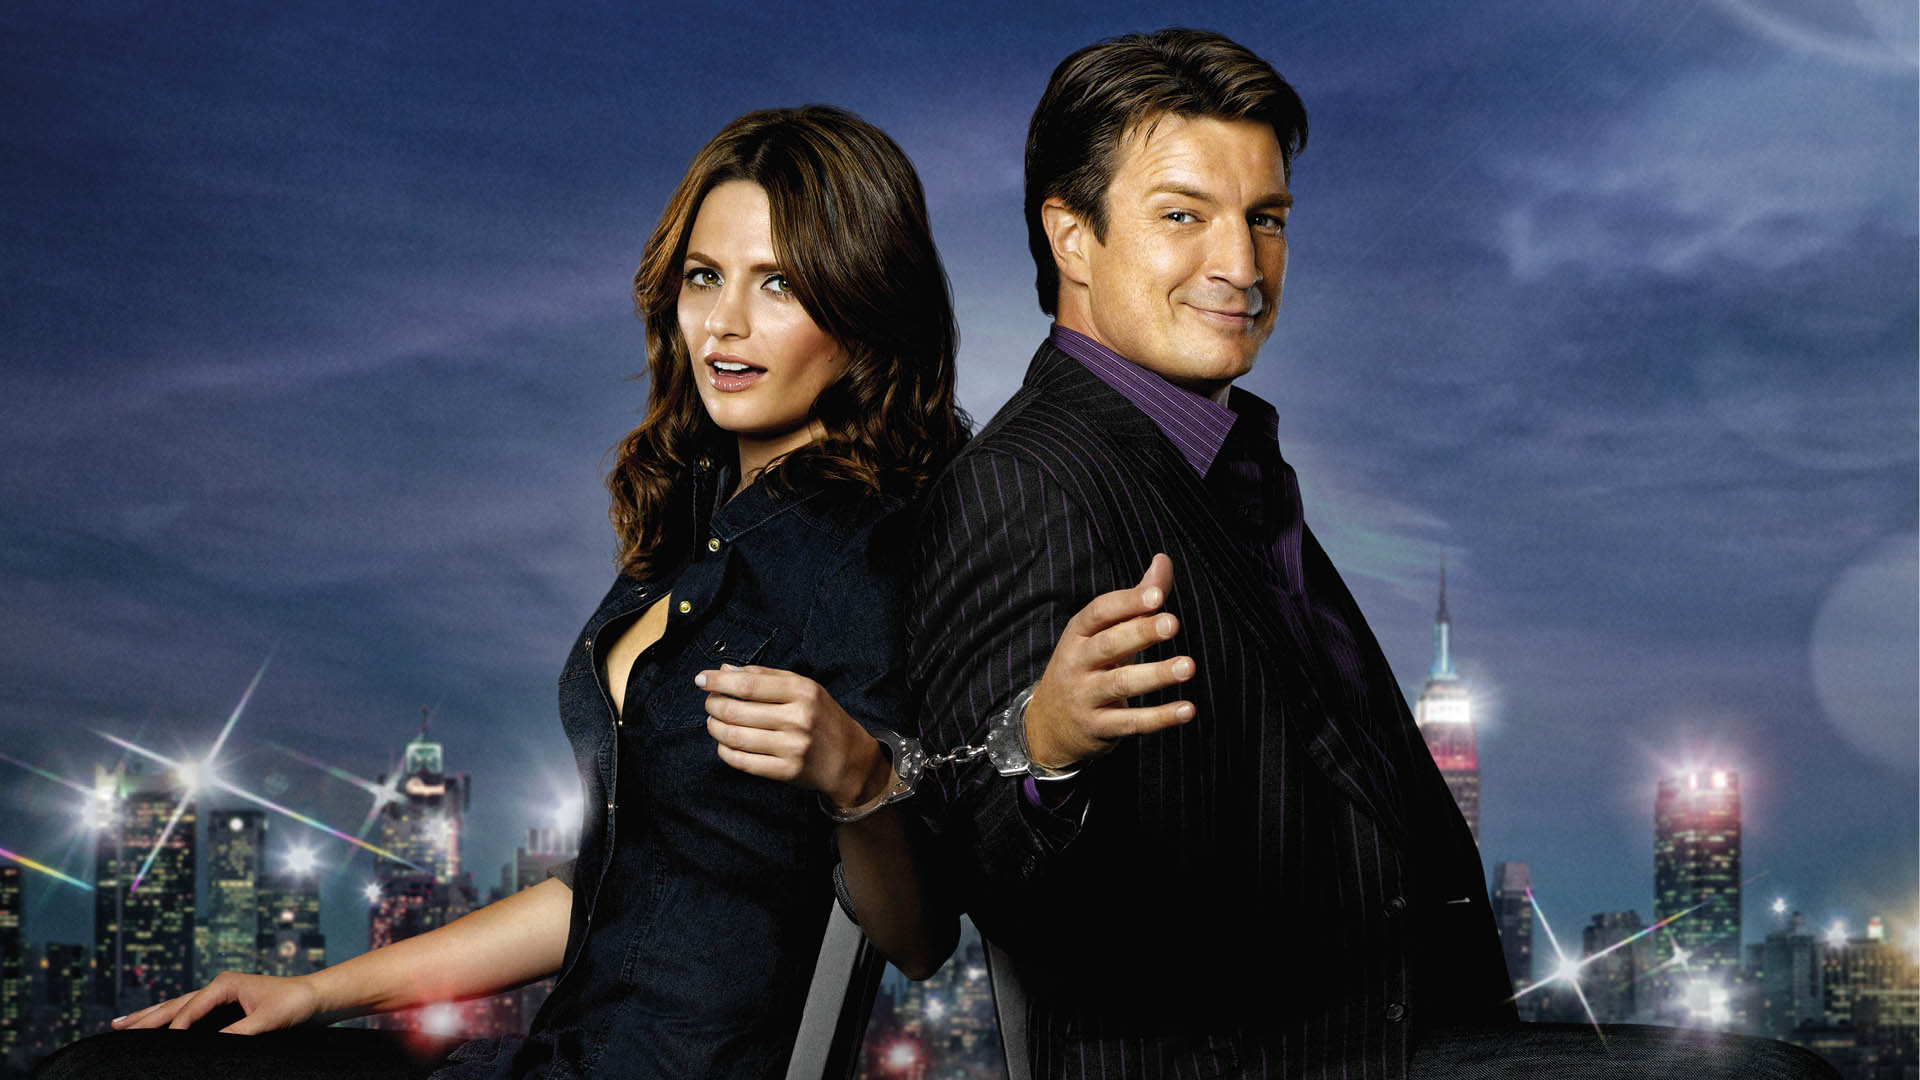 Castle Series Finale Live Stream: Where To Watch And More